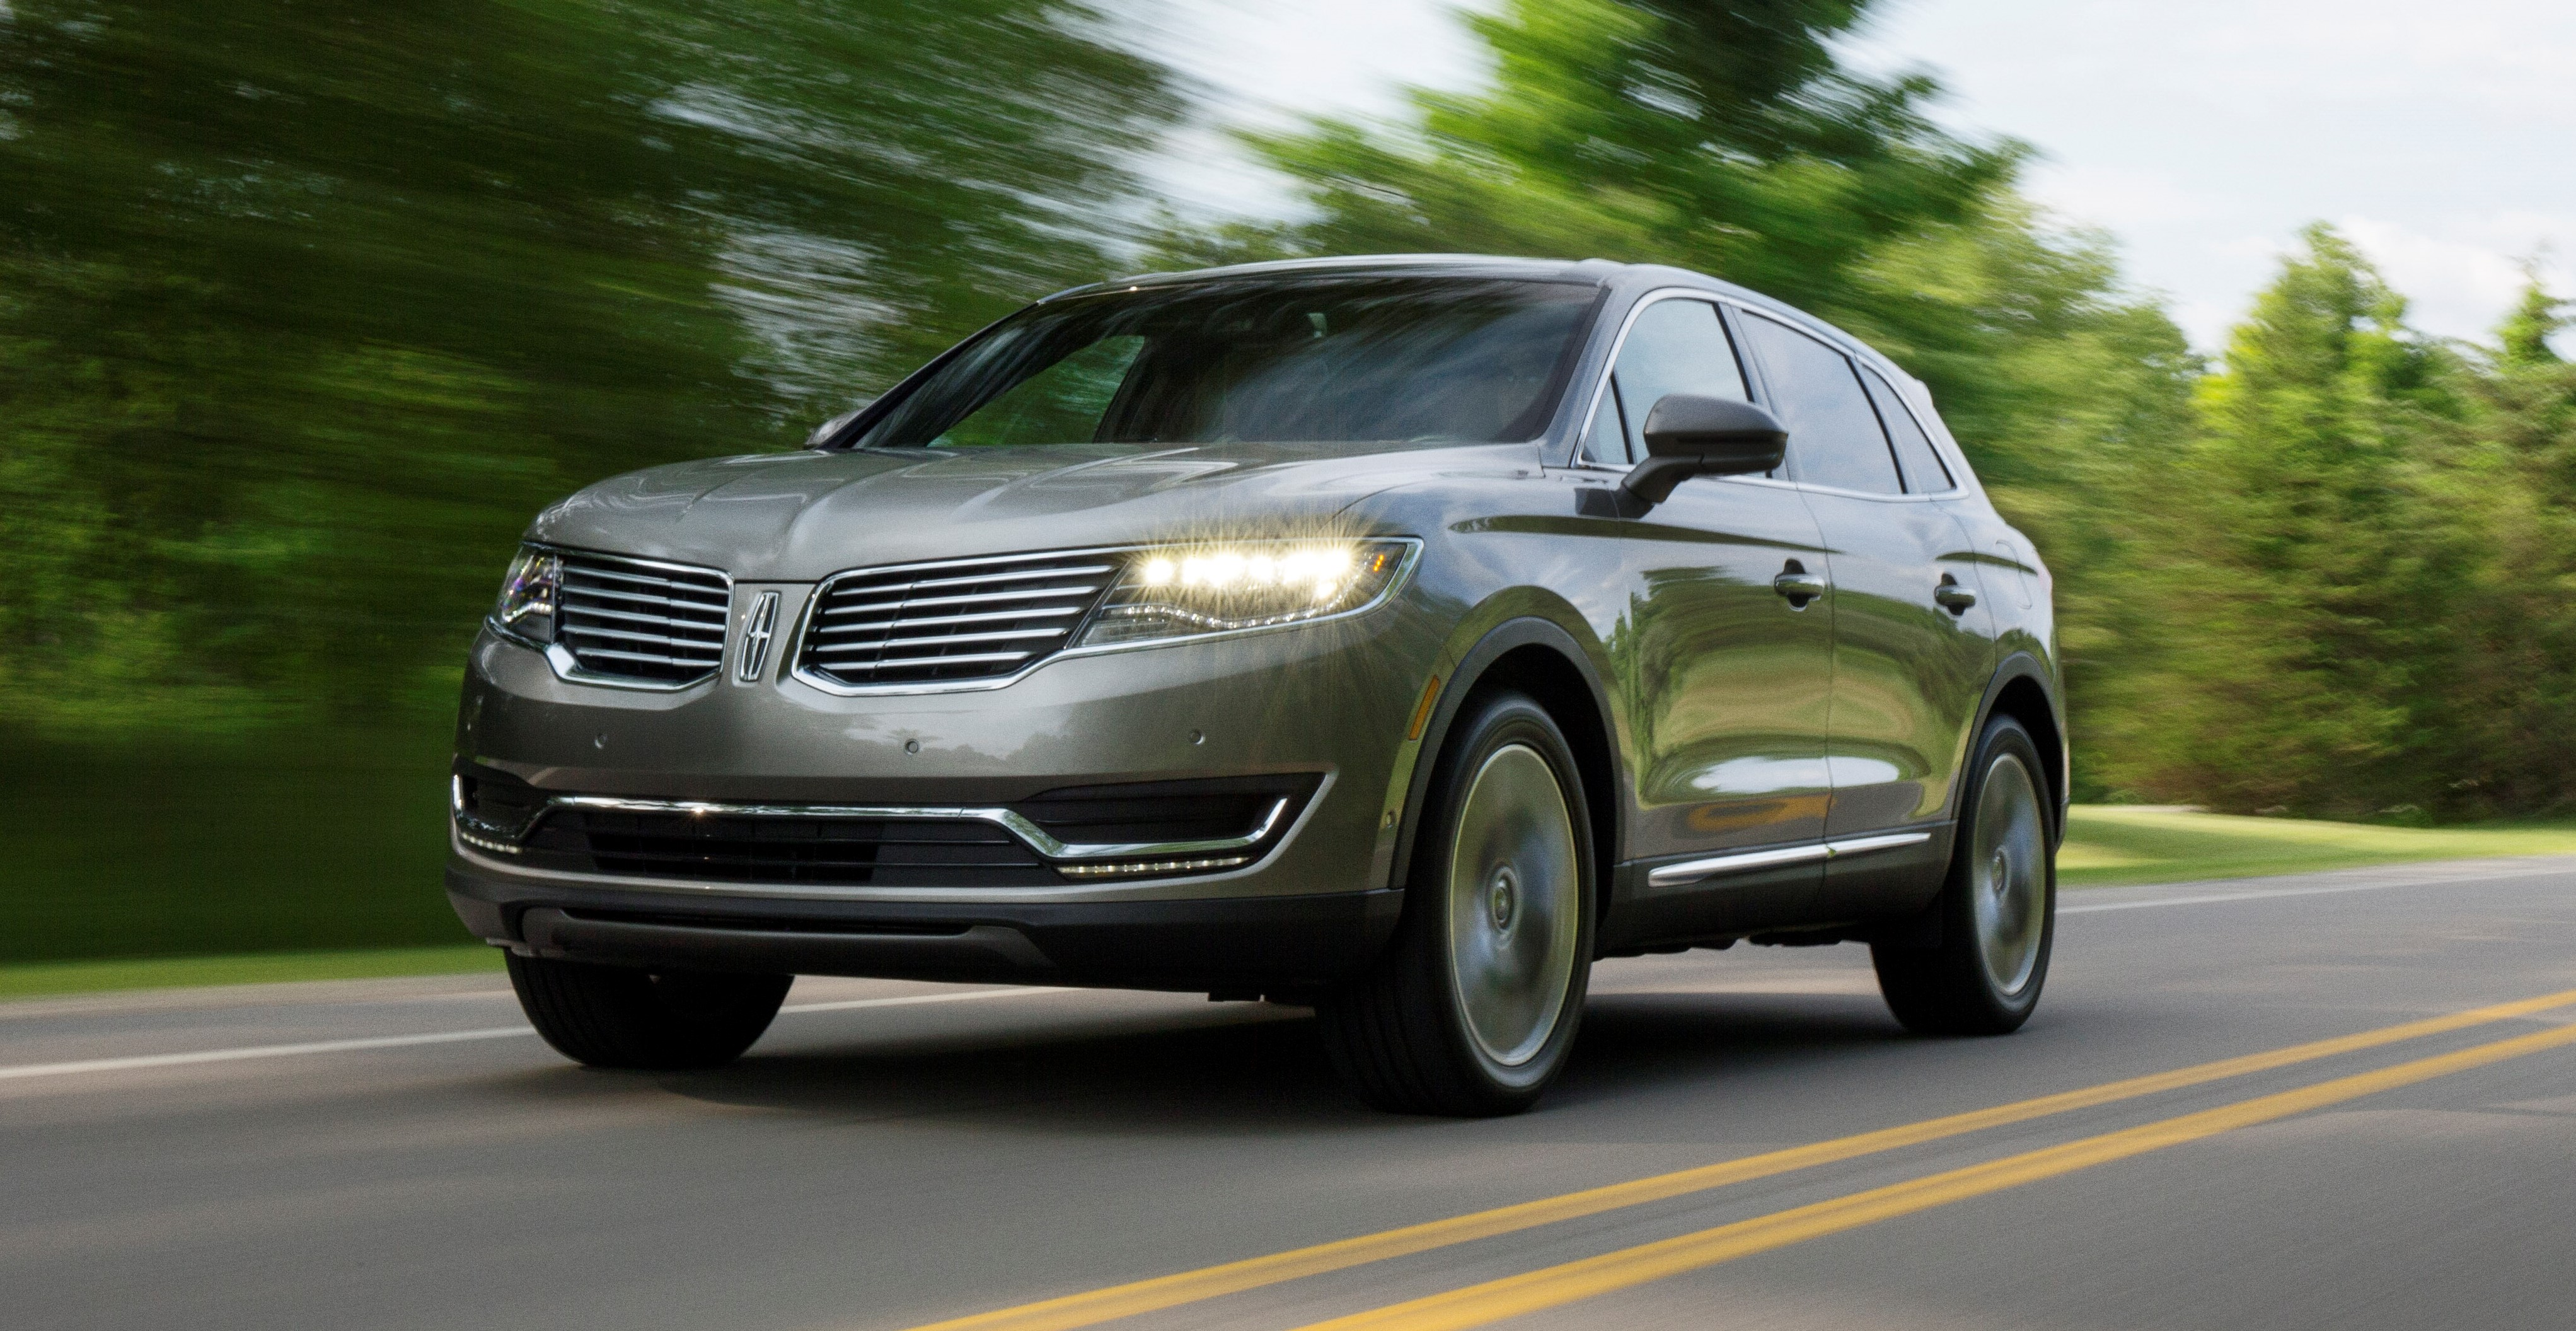 luxury story new la cars first phase face hr brand of renewal mks lincoln upgrade mkz money completes show ford